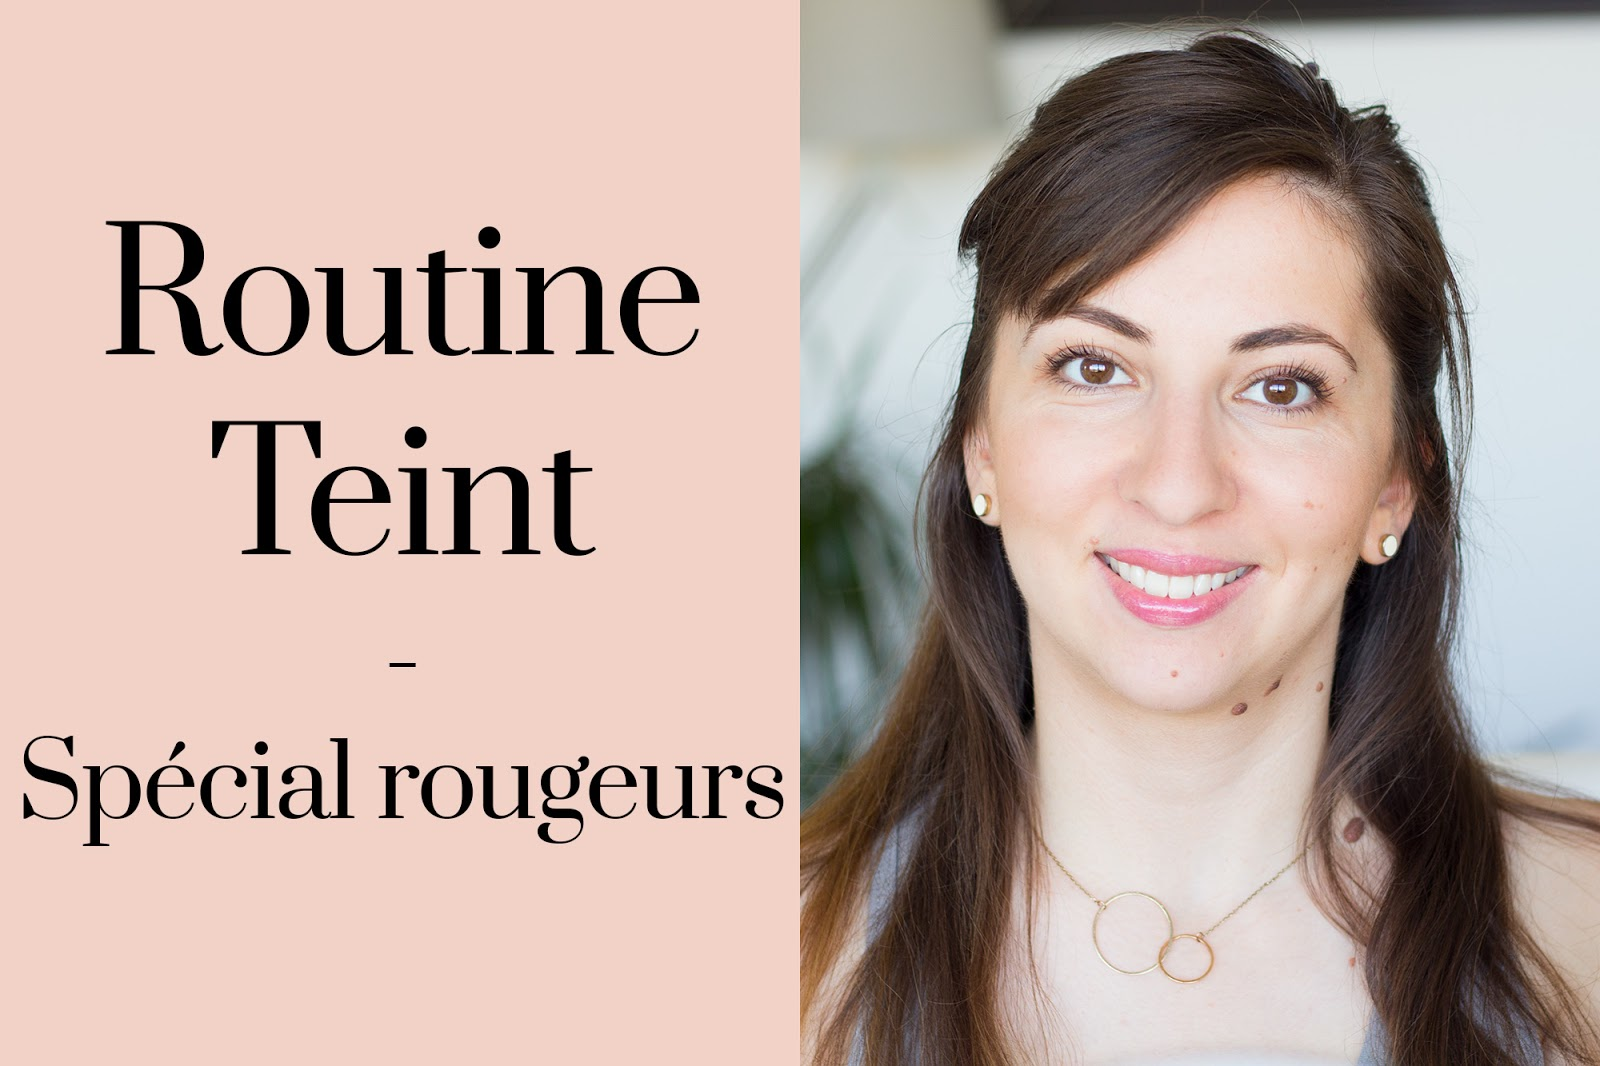 Routine teint special rougeurs